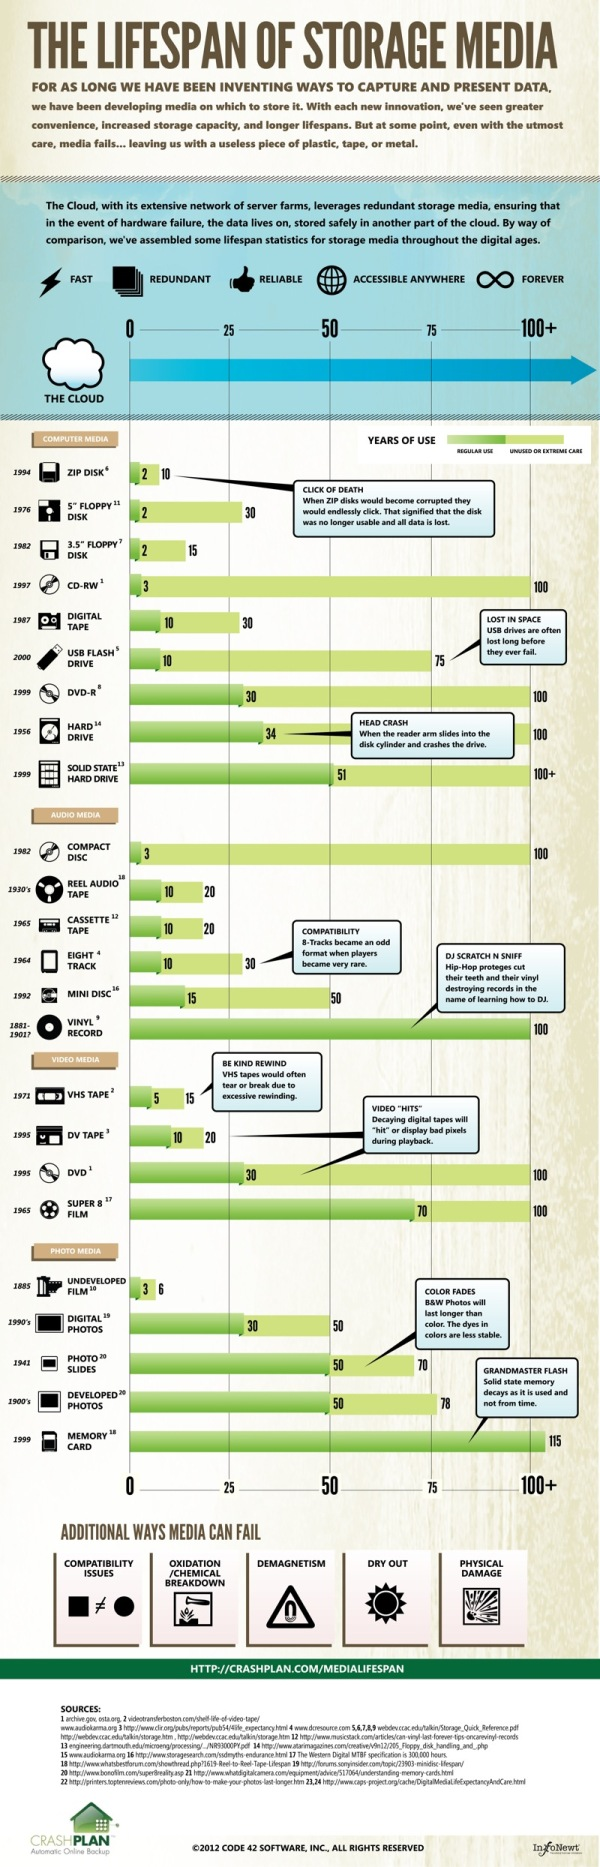 The Lifespan of Storage Media infographic